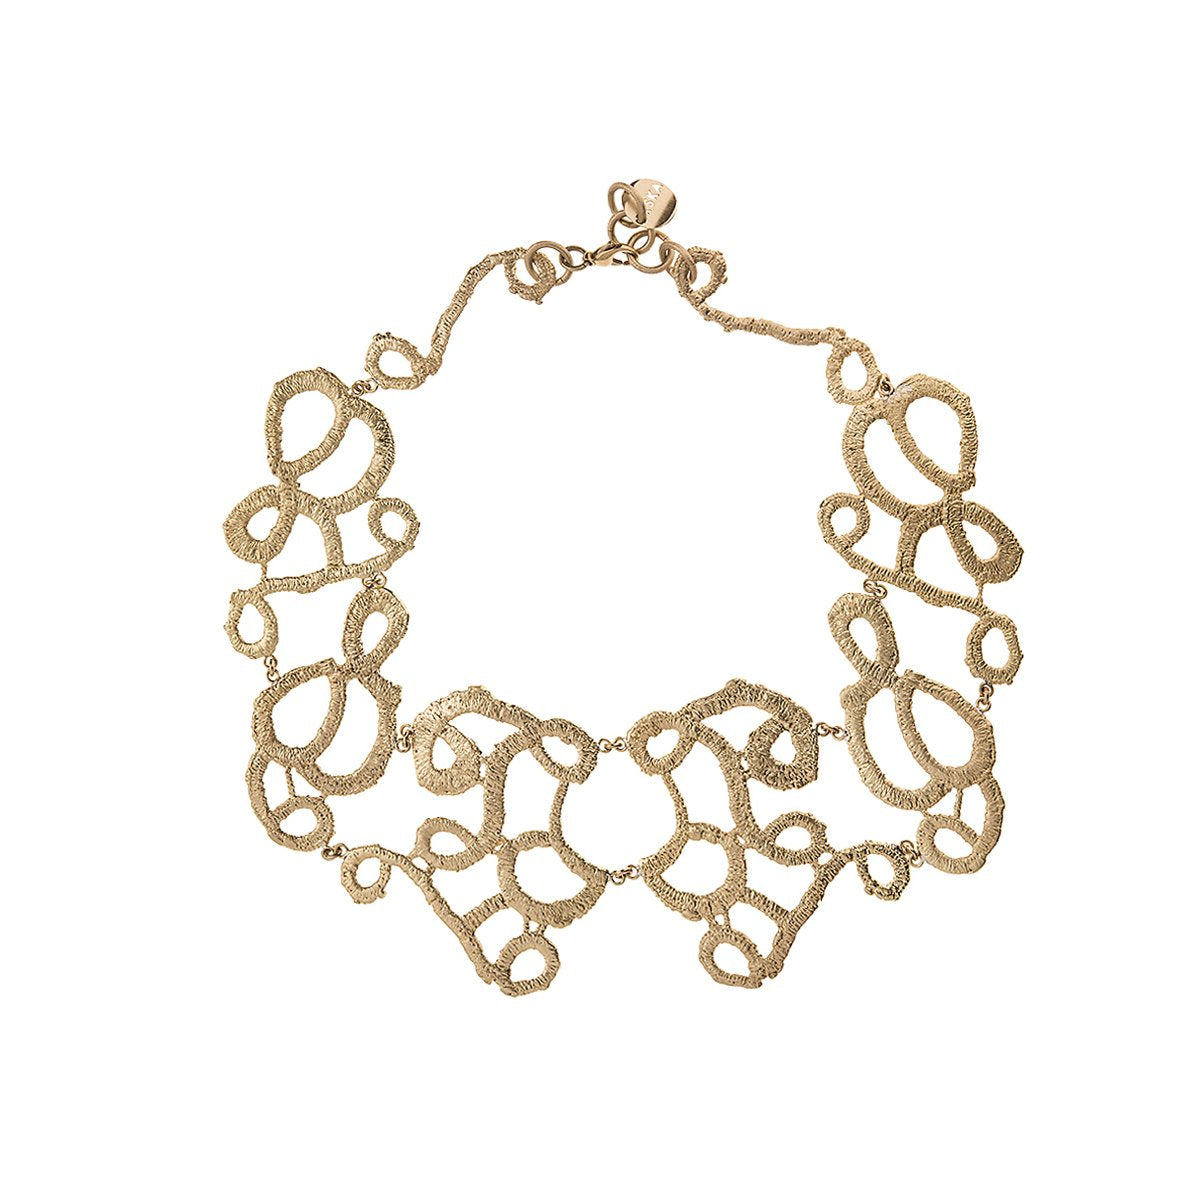 Necklace from Ajour collection - AJN86